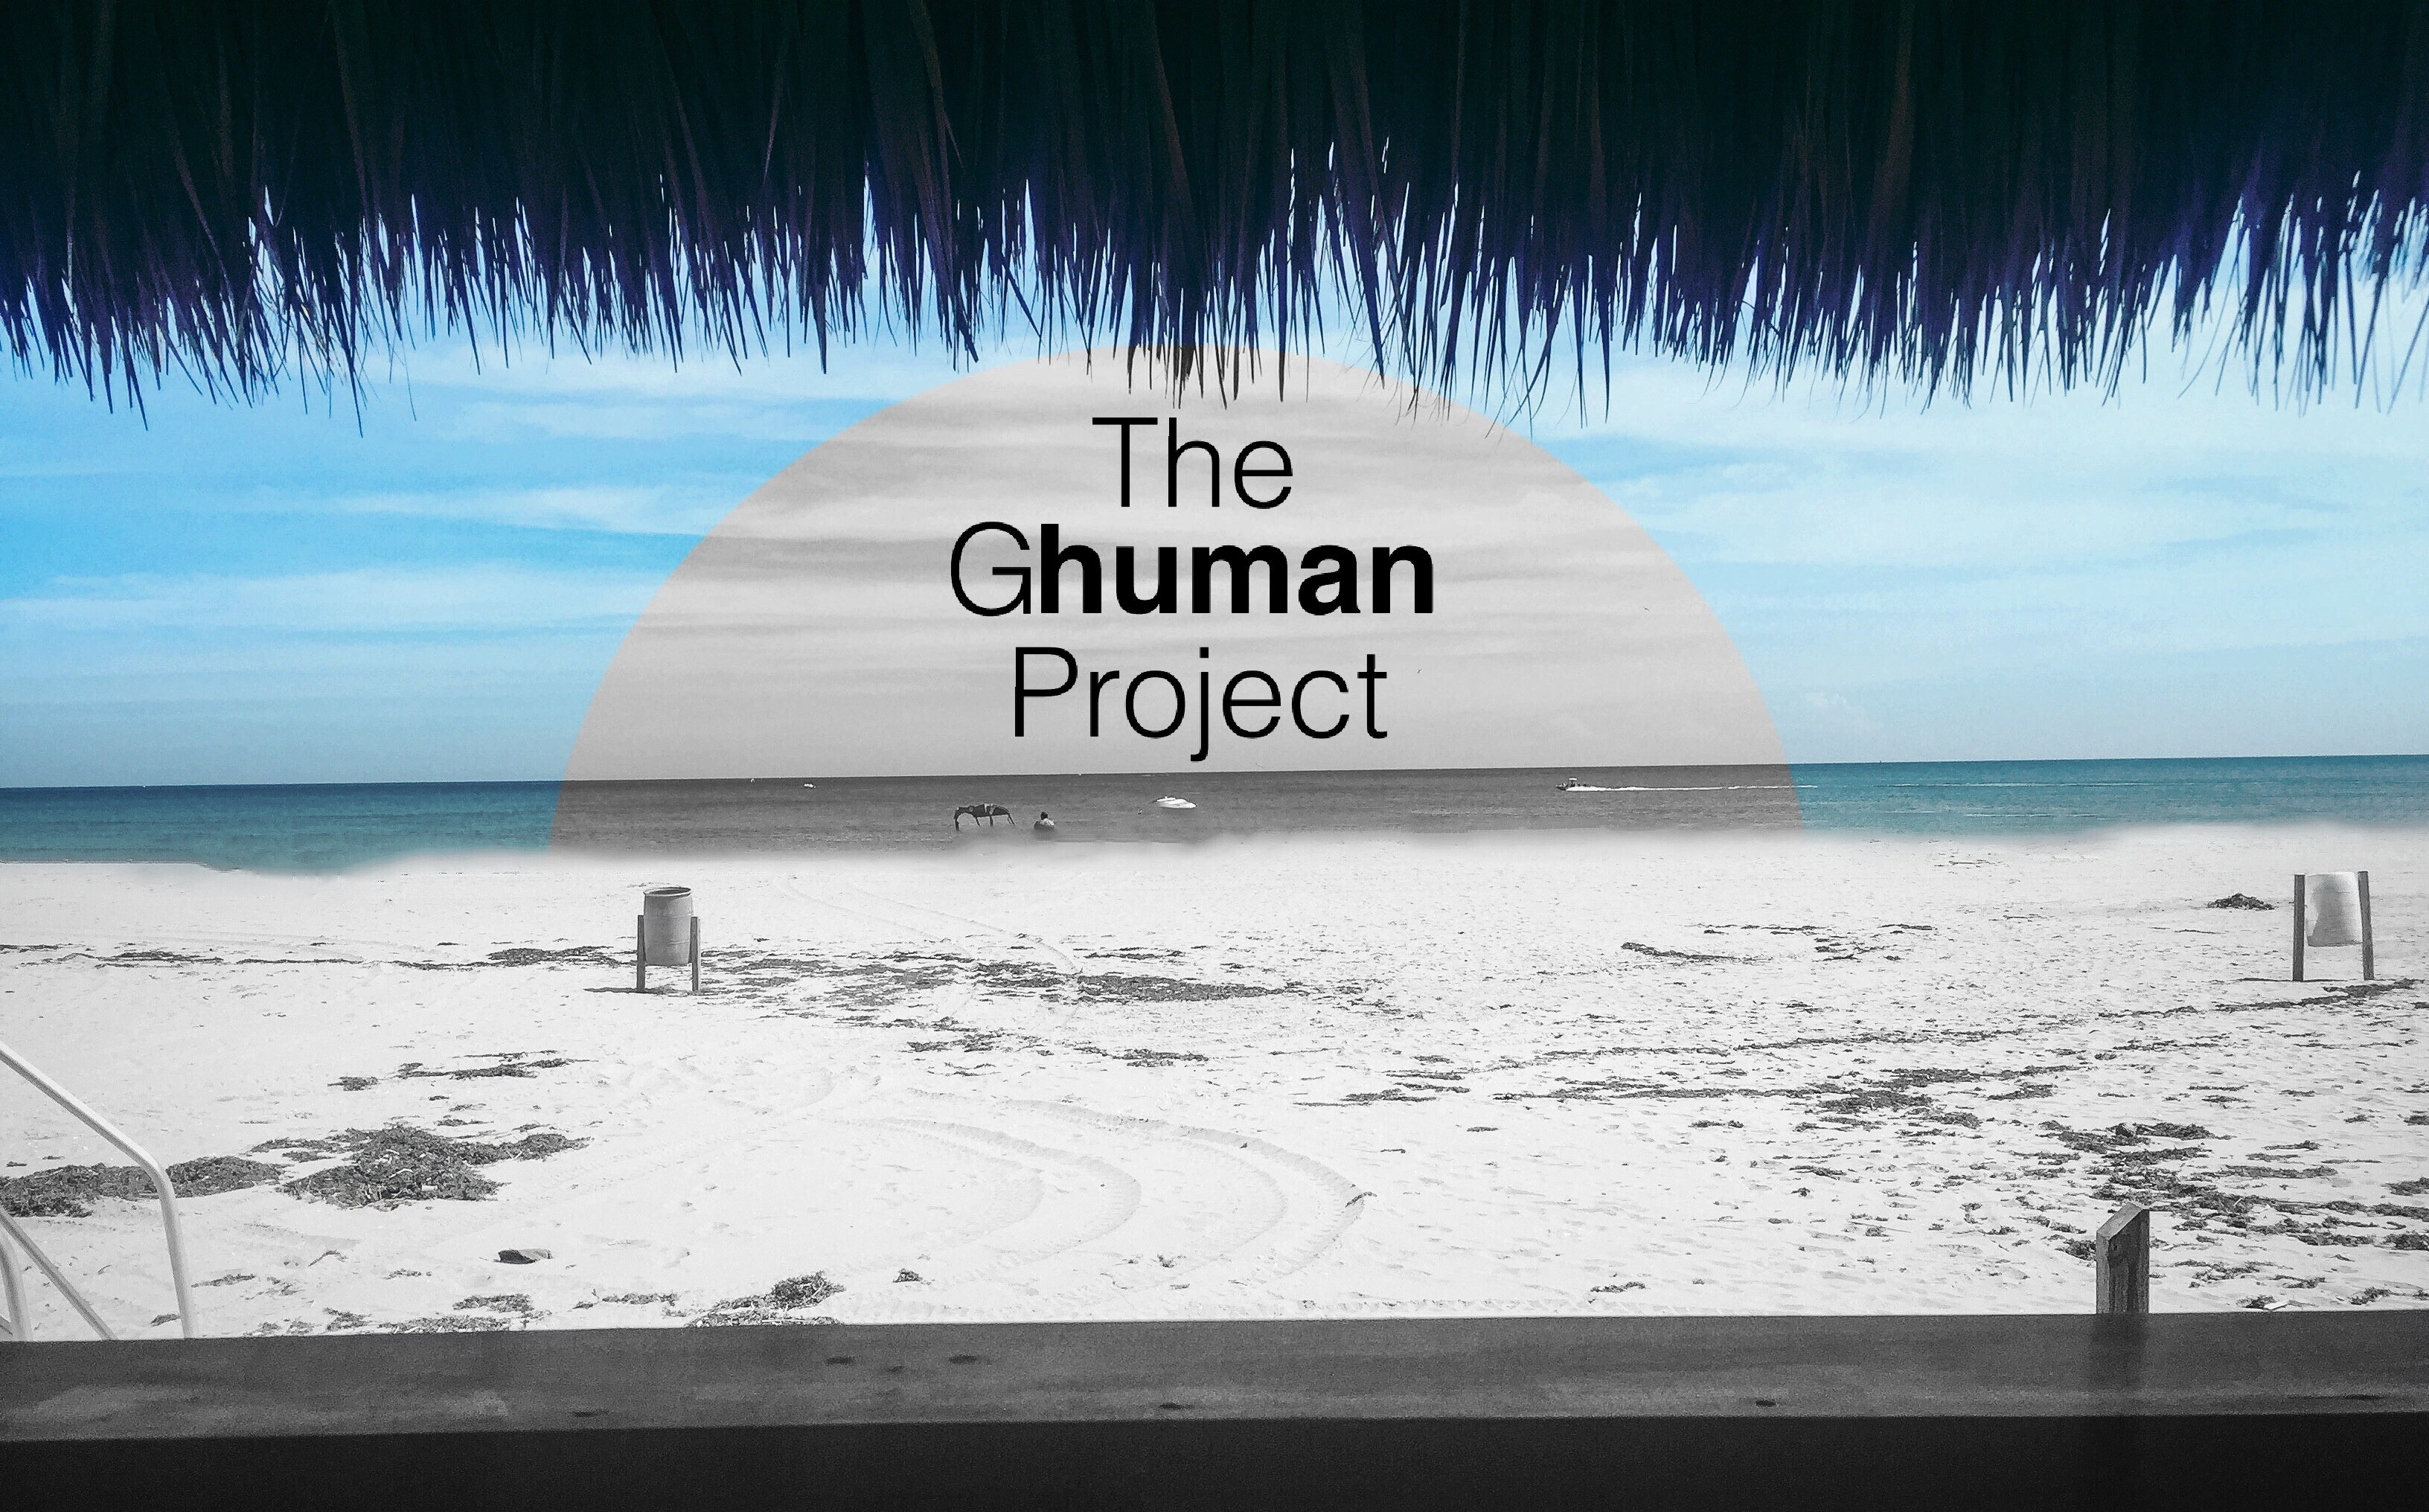 The GHUMAN Project